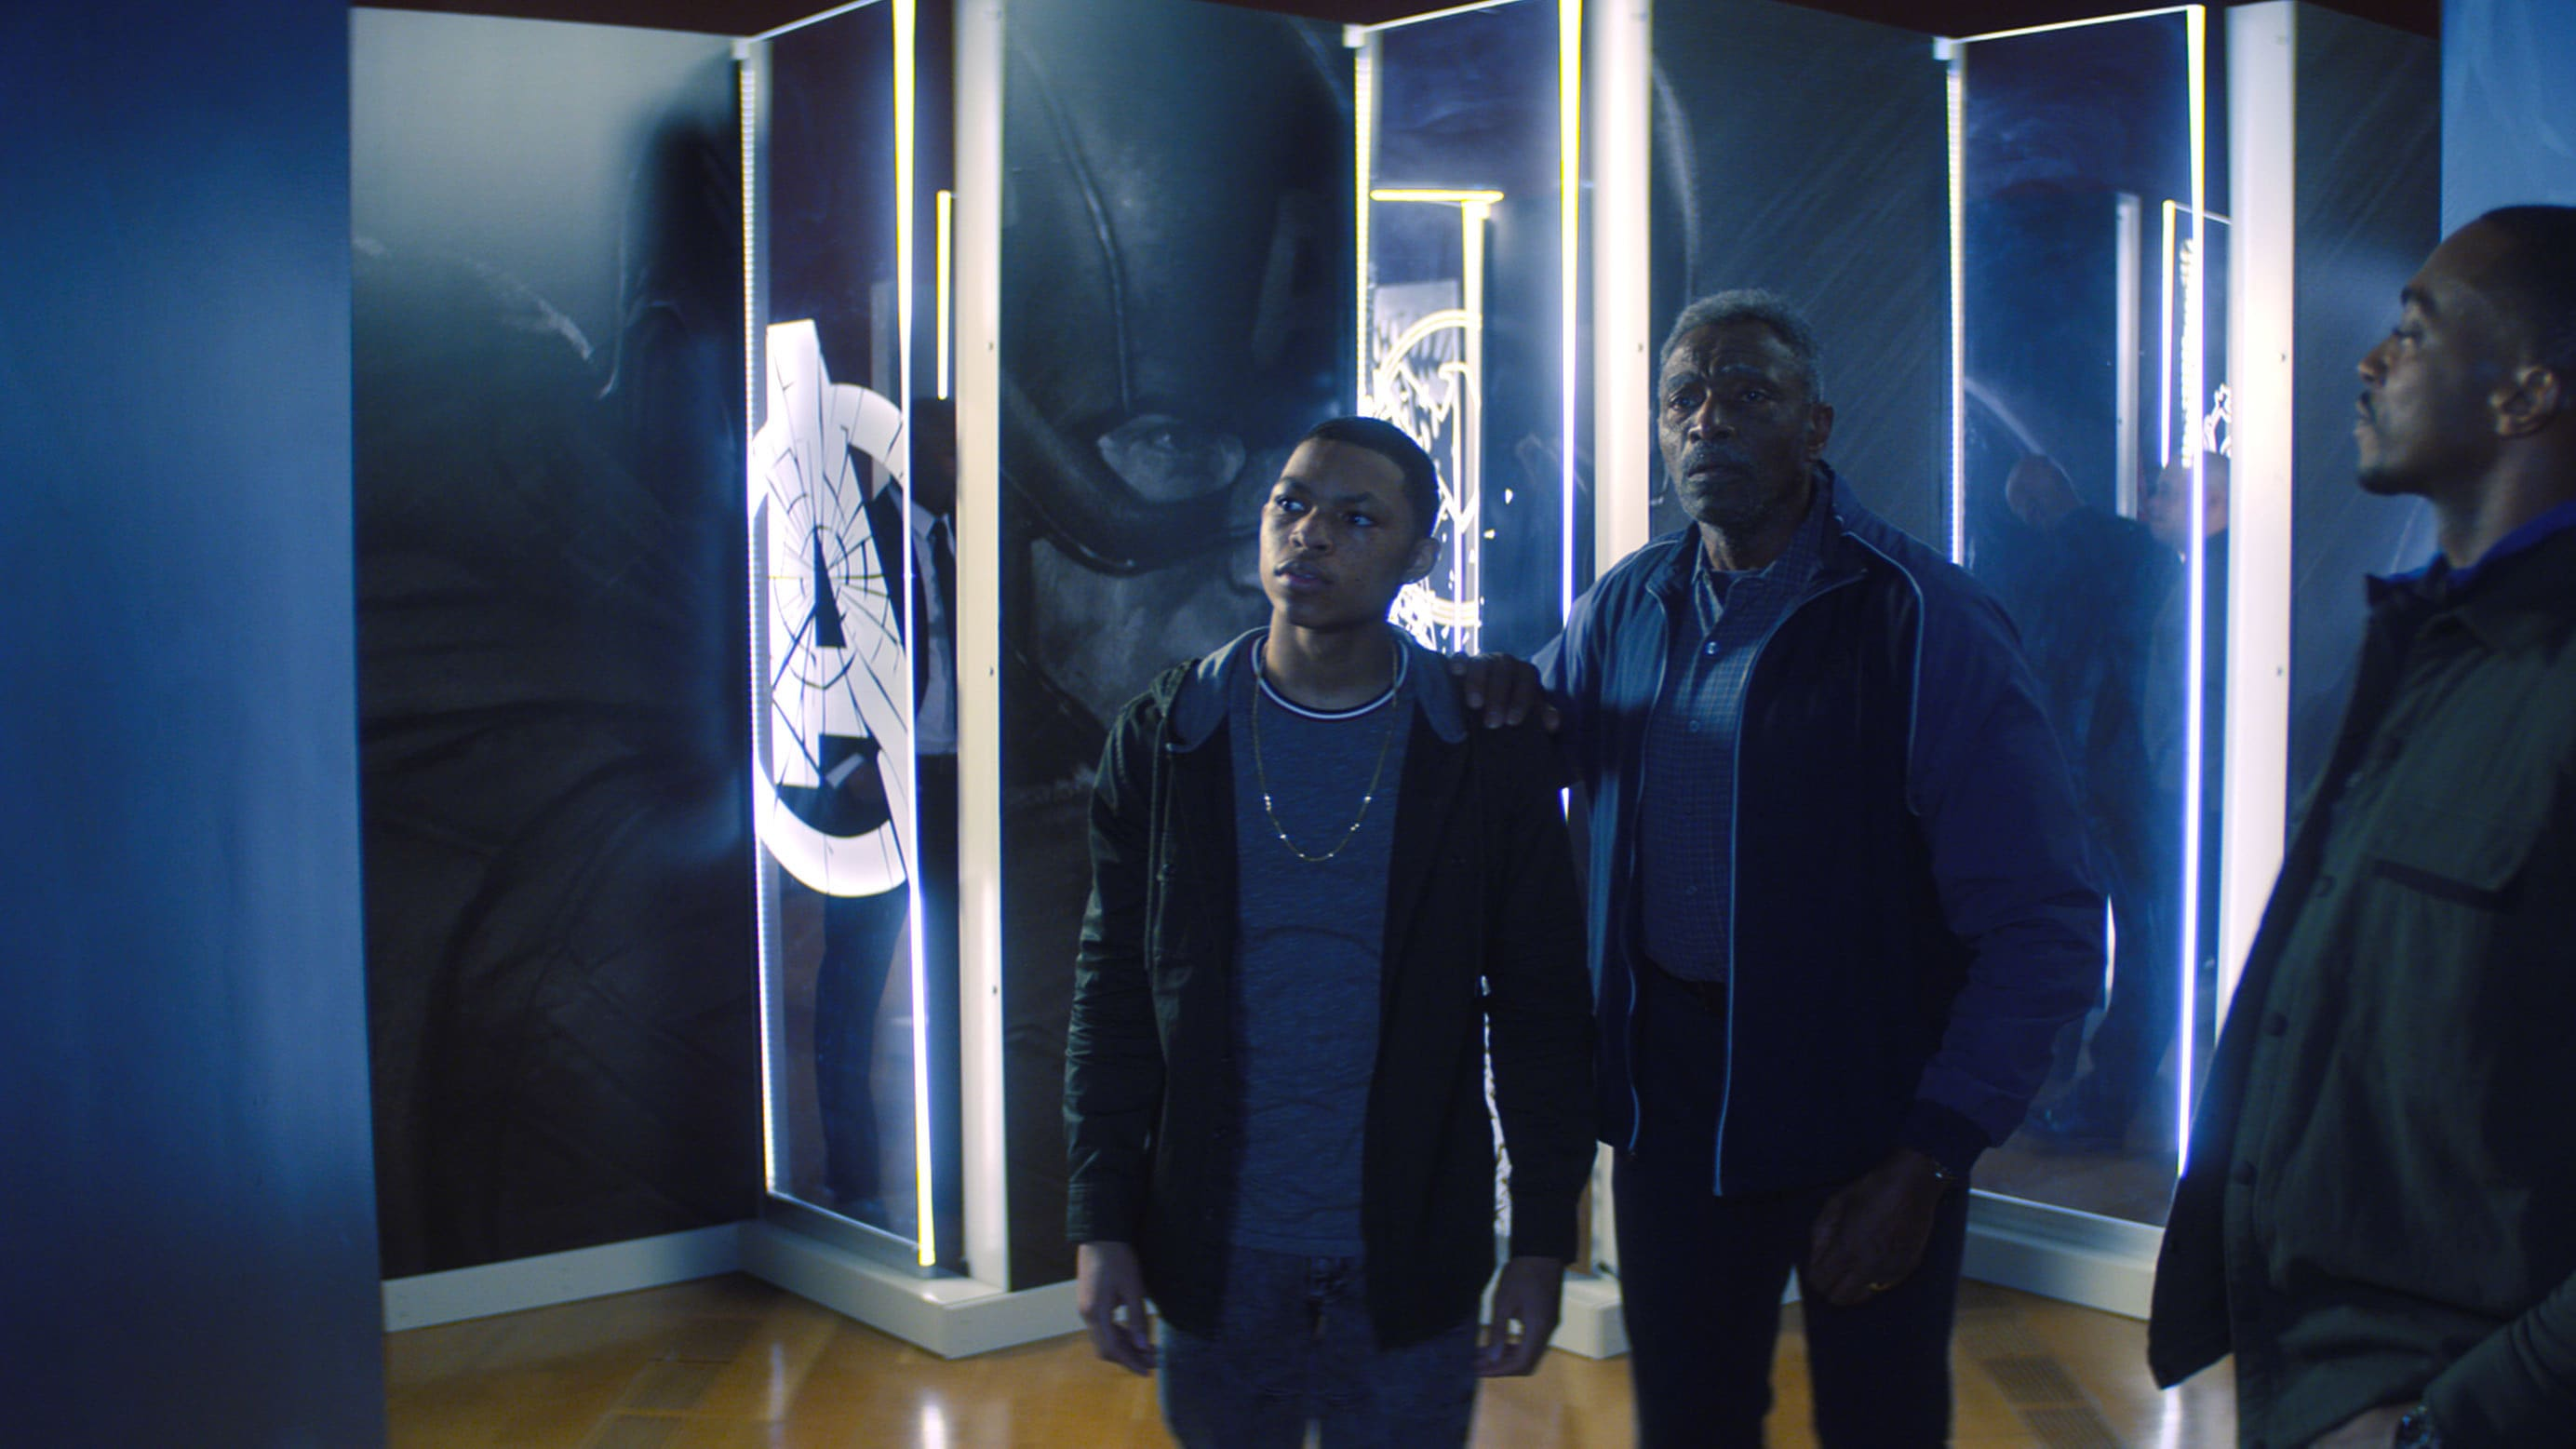 (L-R): Eli Bradley (Elijah Richardson), Isaiah Bradley (Carl Lumbly) and Falcon/Sam Wilson (Anthony Mackie) in Marvel Studios' THE FALCON AND THE WINTER SOLDIER exclusively on Disney+. Photo courtesy of Marvel Studios. ©Marvel Studios 2021. All Rights Reserved.